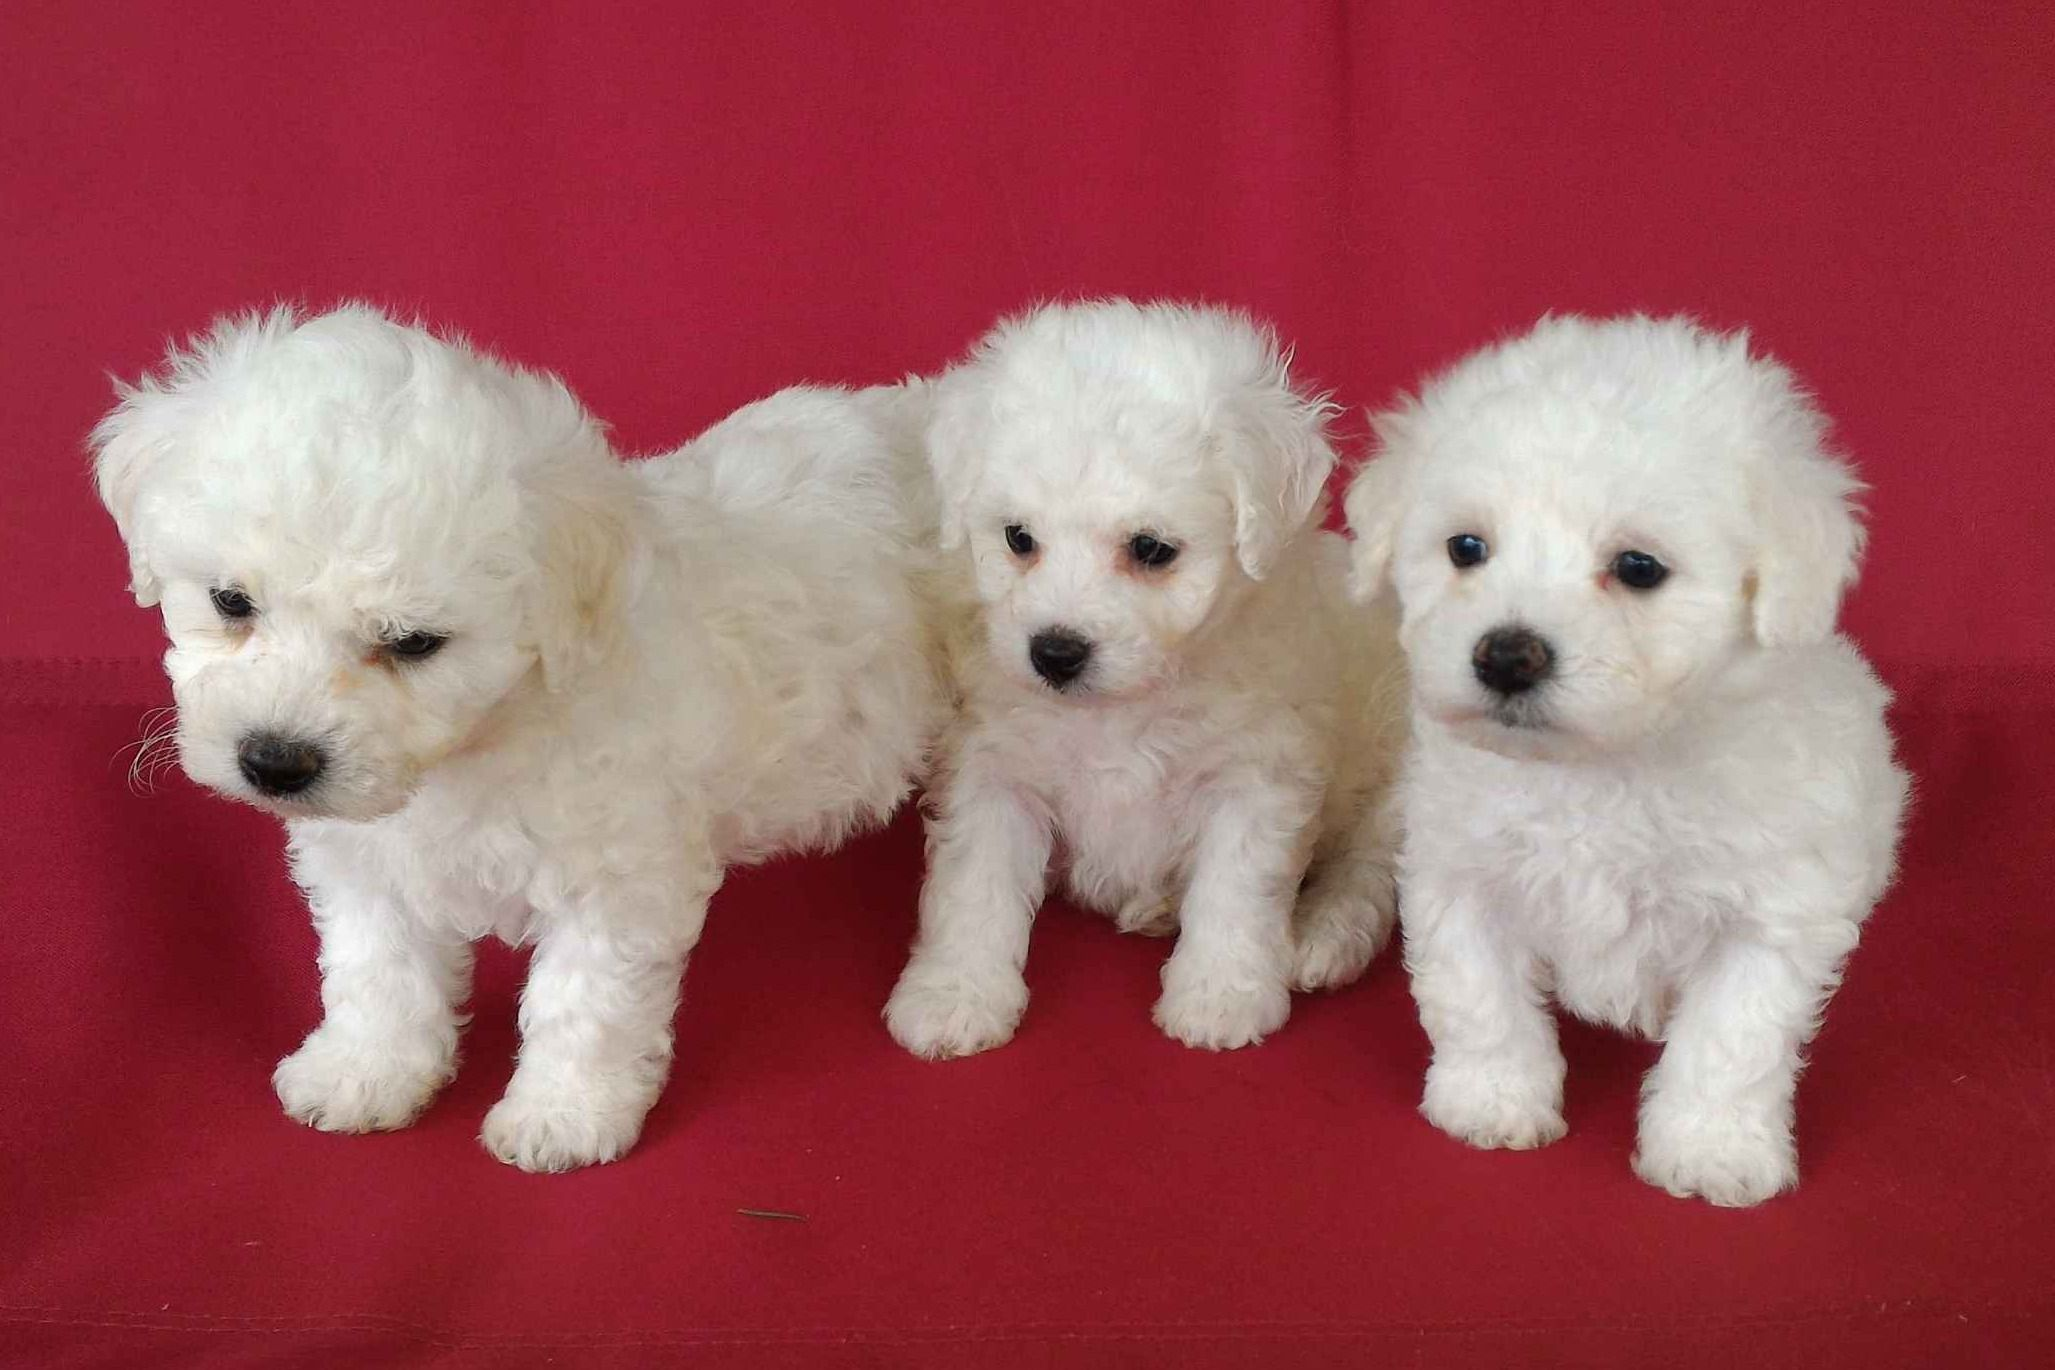 Bichon Frise Puppies Has Bichon Frise Puppies For Sale In